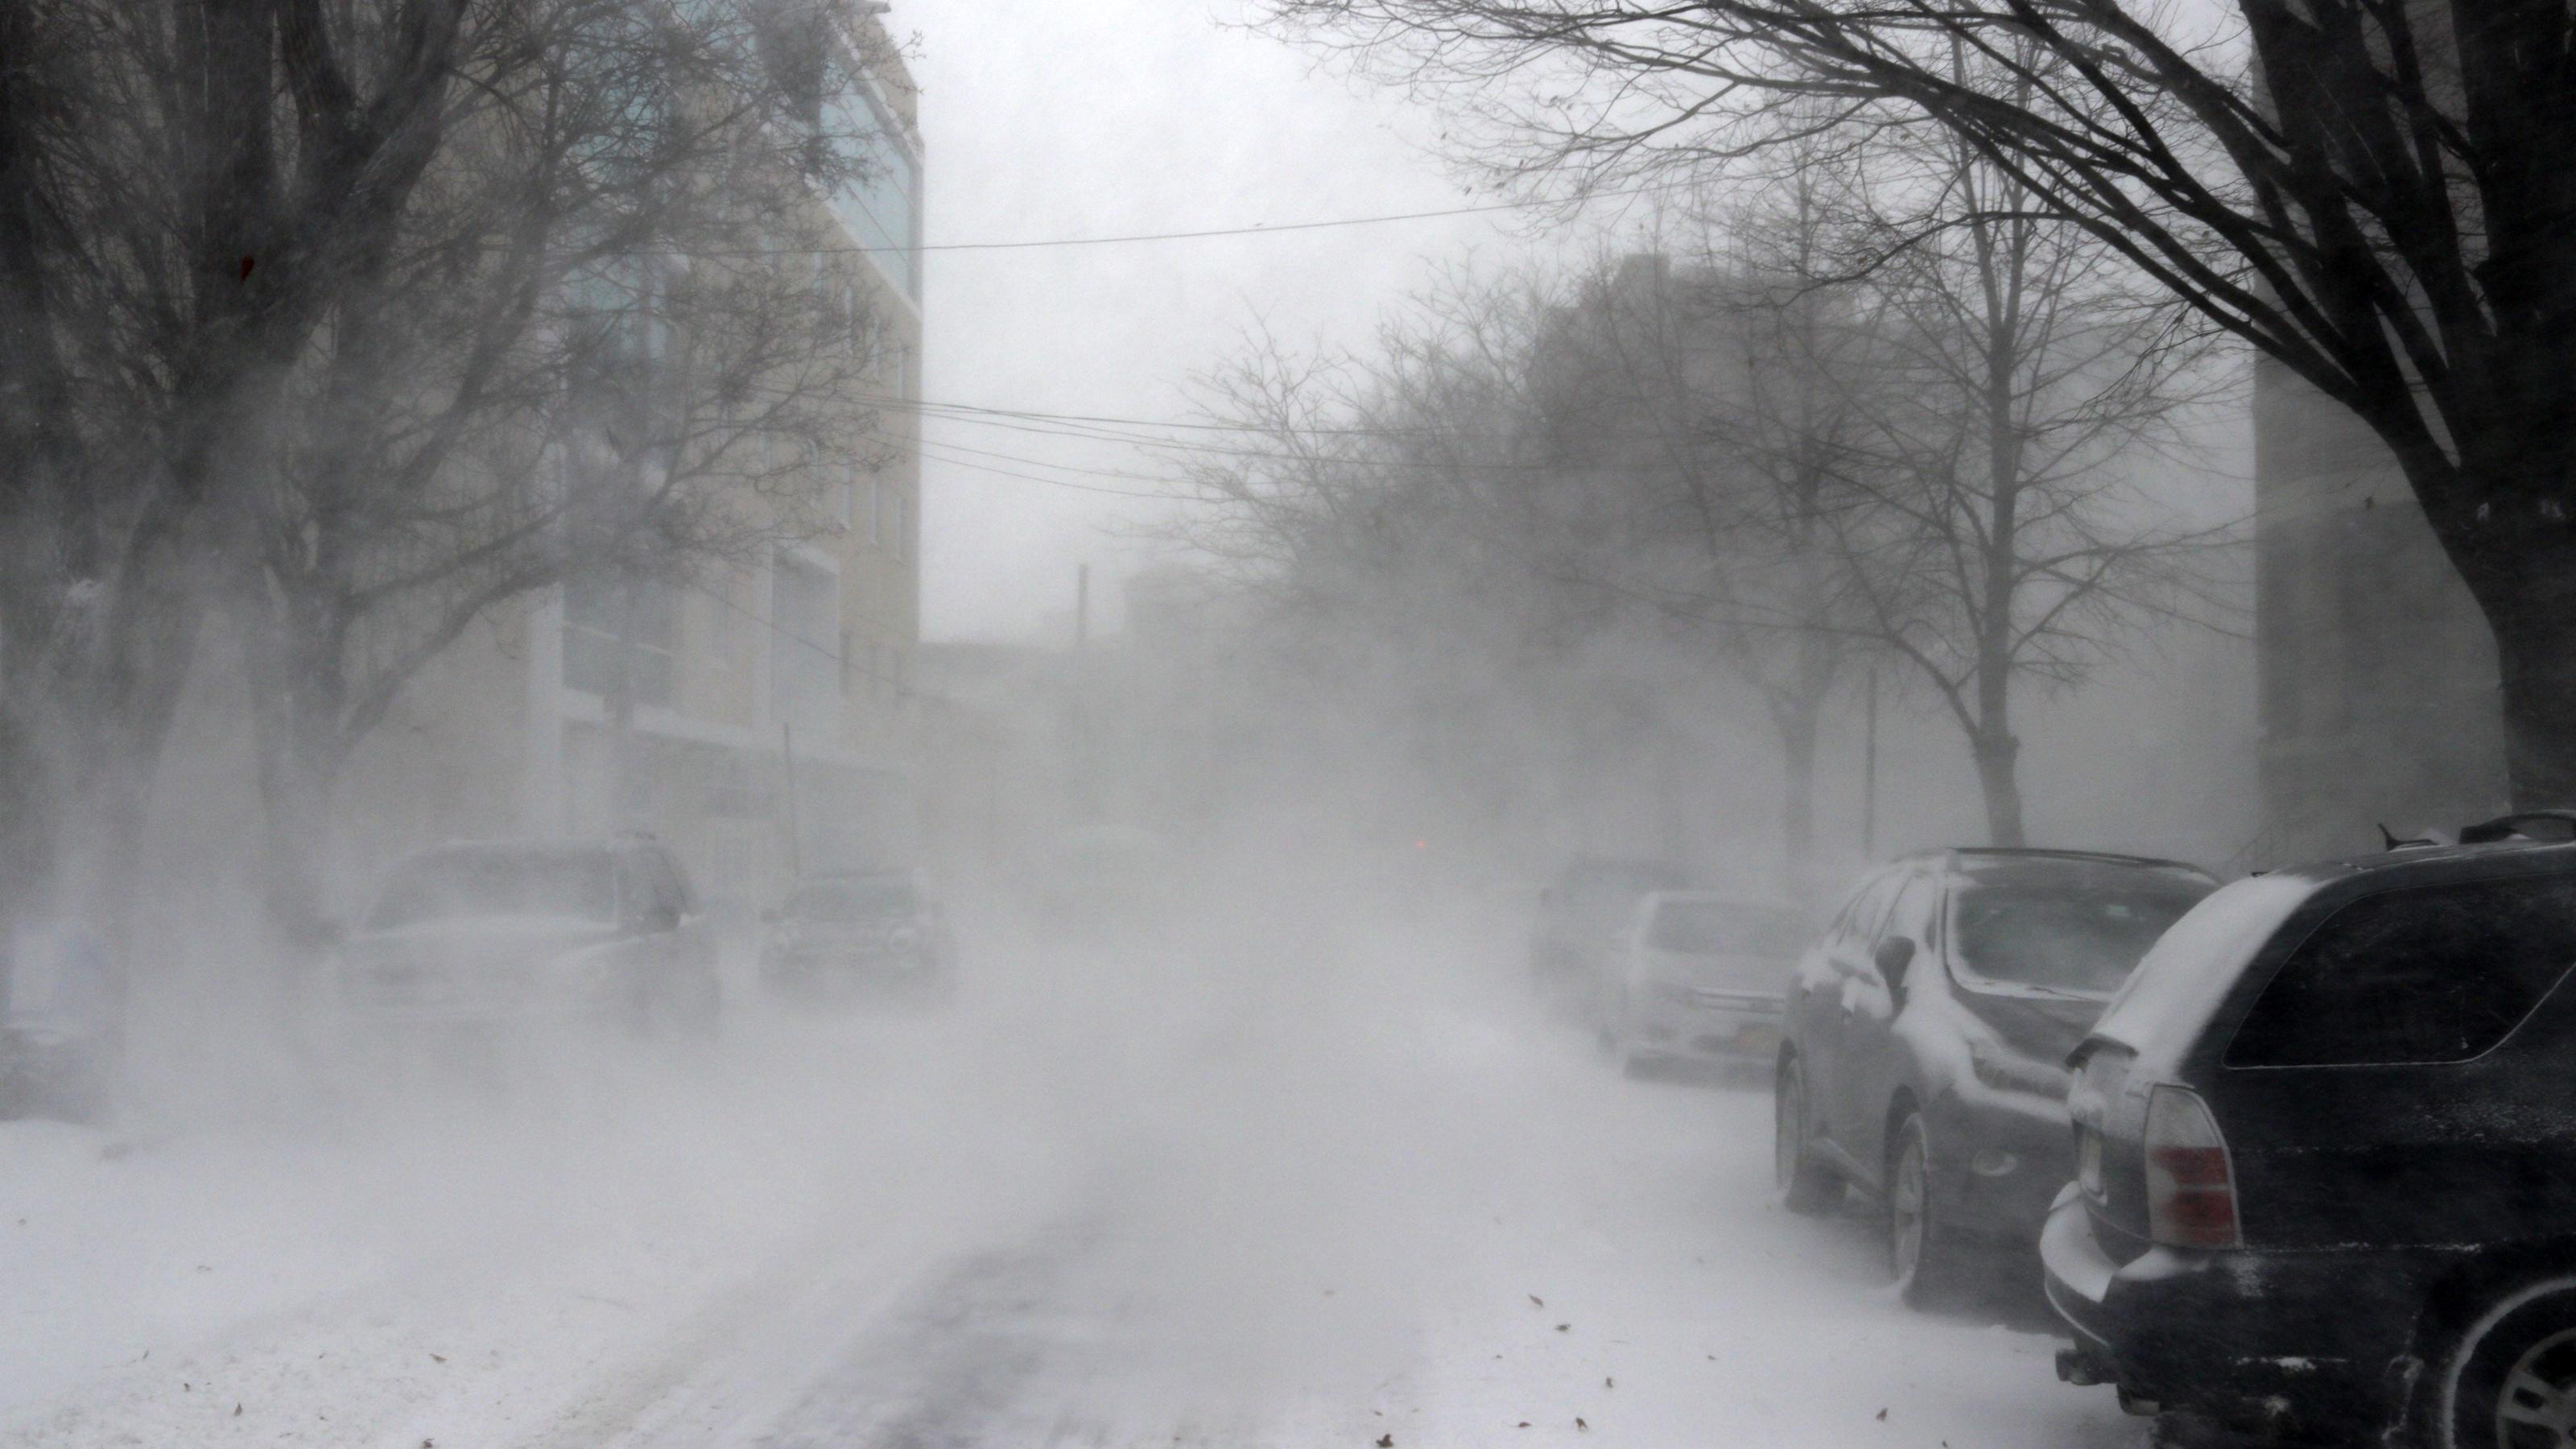 January 4, 2018 - New York City, New York, US - The first winter storm, of 2018 has descended upon New York City with white-out conditions, heavy winds and blowing snow, making daily activities difficult for many. City government declared a 'Winter W